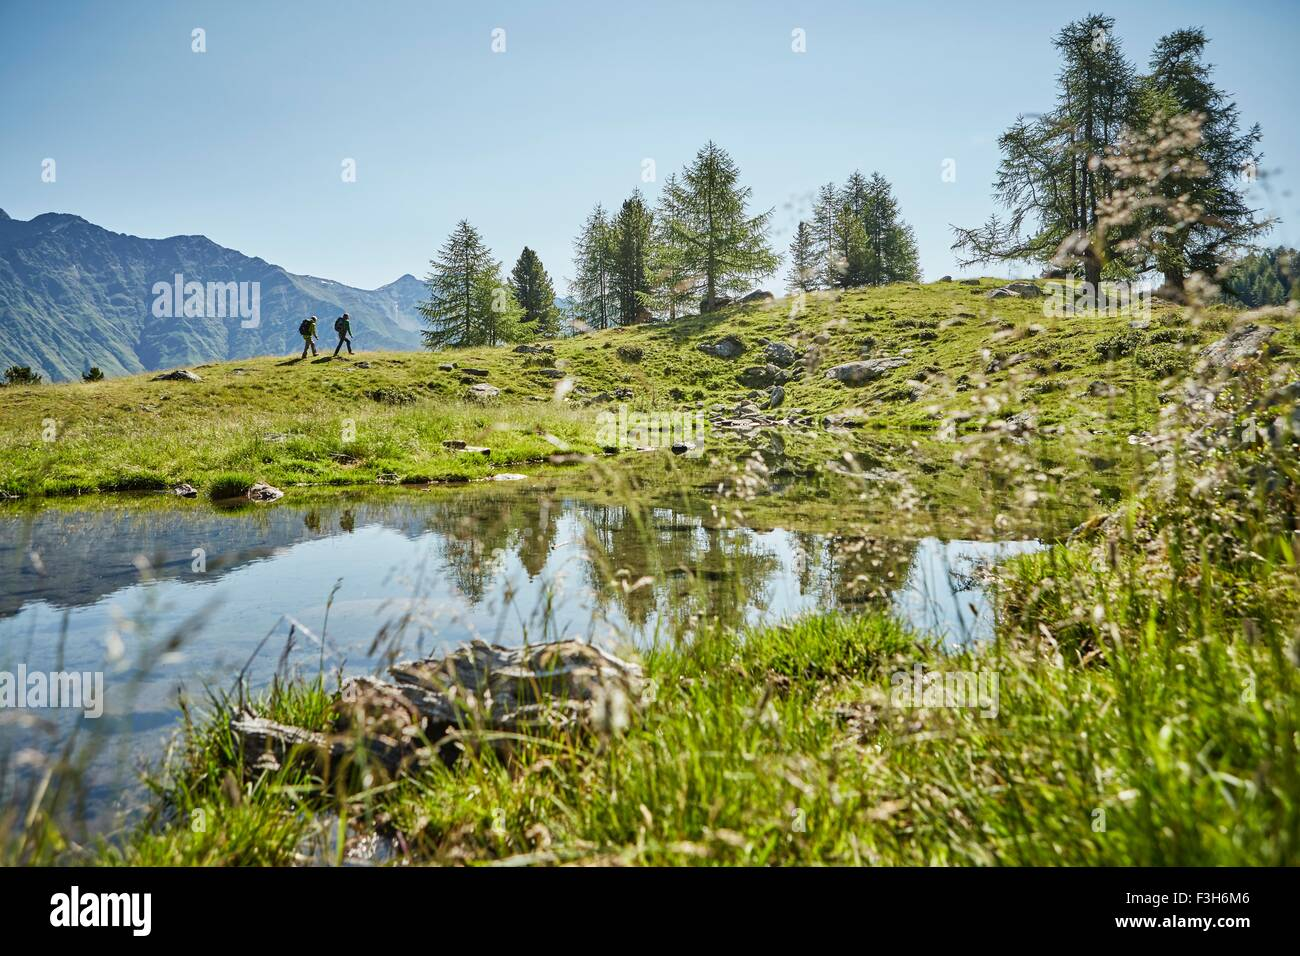 Young hiking couple in distant landscape, Karthaus, Val Senales, South Tyrol, Italy - Stock Image